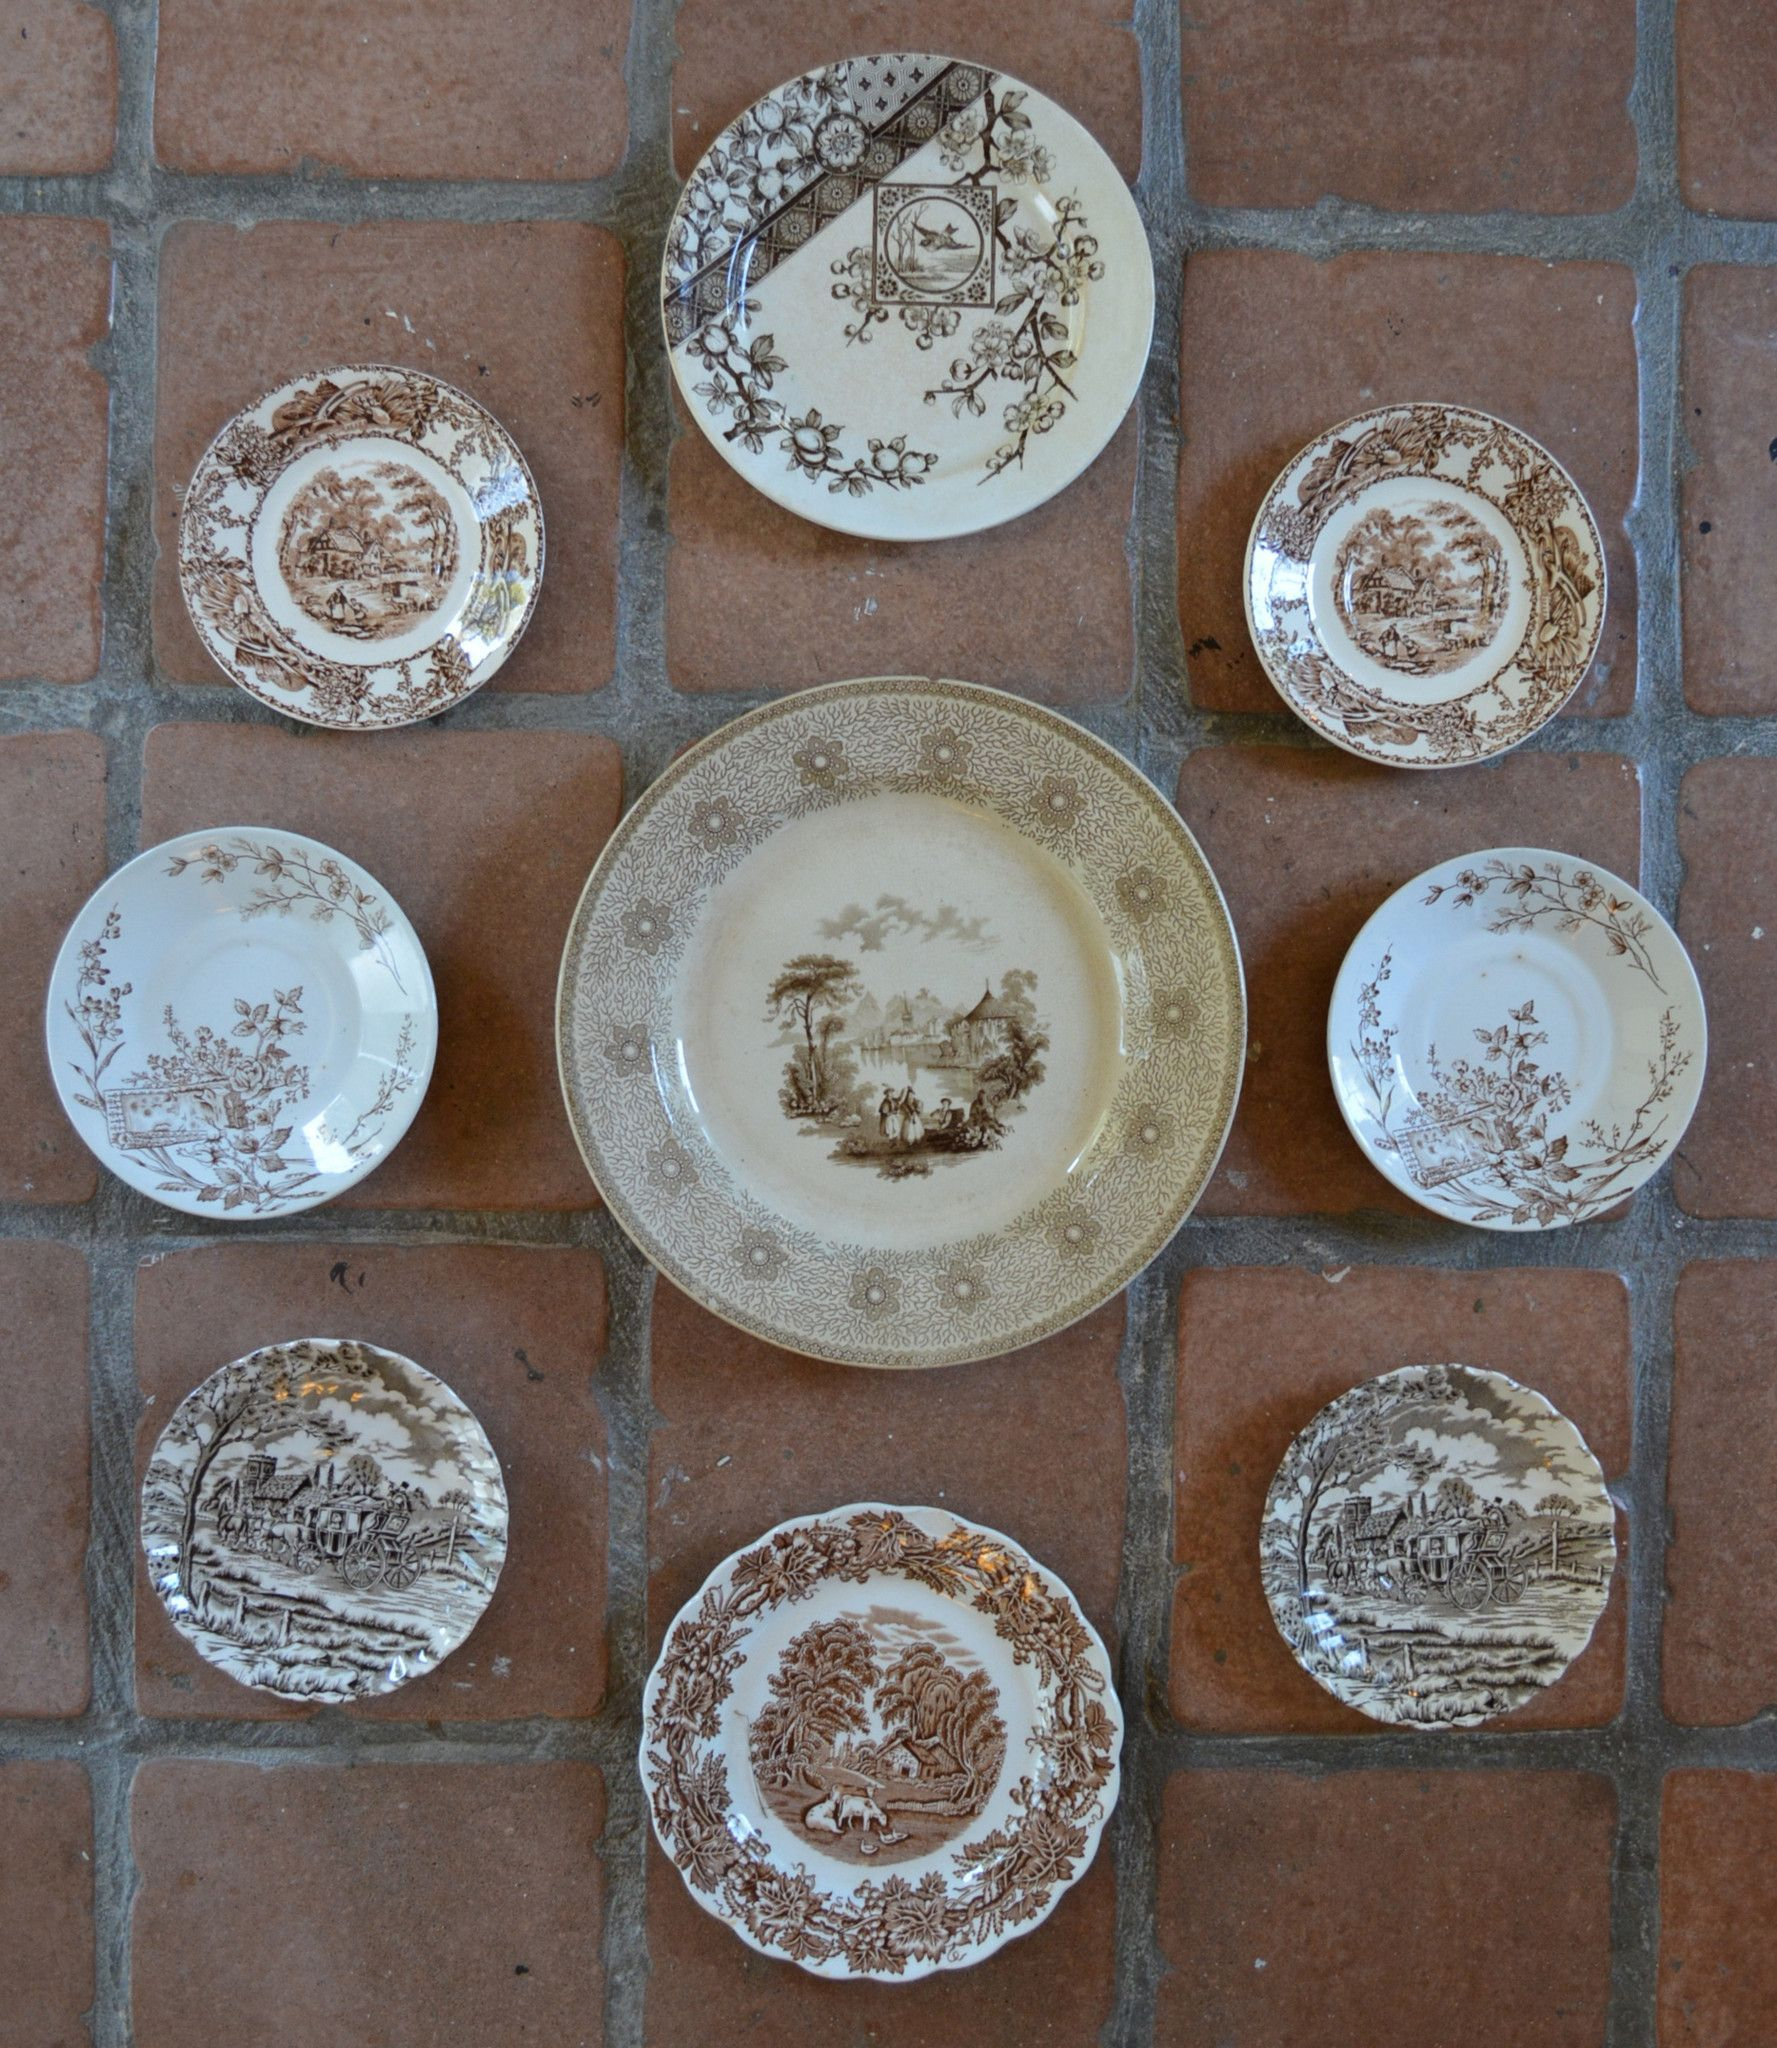 Mix \u0026 Match Set of 9 Vintage Brown Toile Transferware Plates - Instant Wall Display Collection & Mix \u0026 Match Set of 9 Vintage Brown Toile Transferware Plates ...